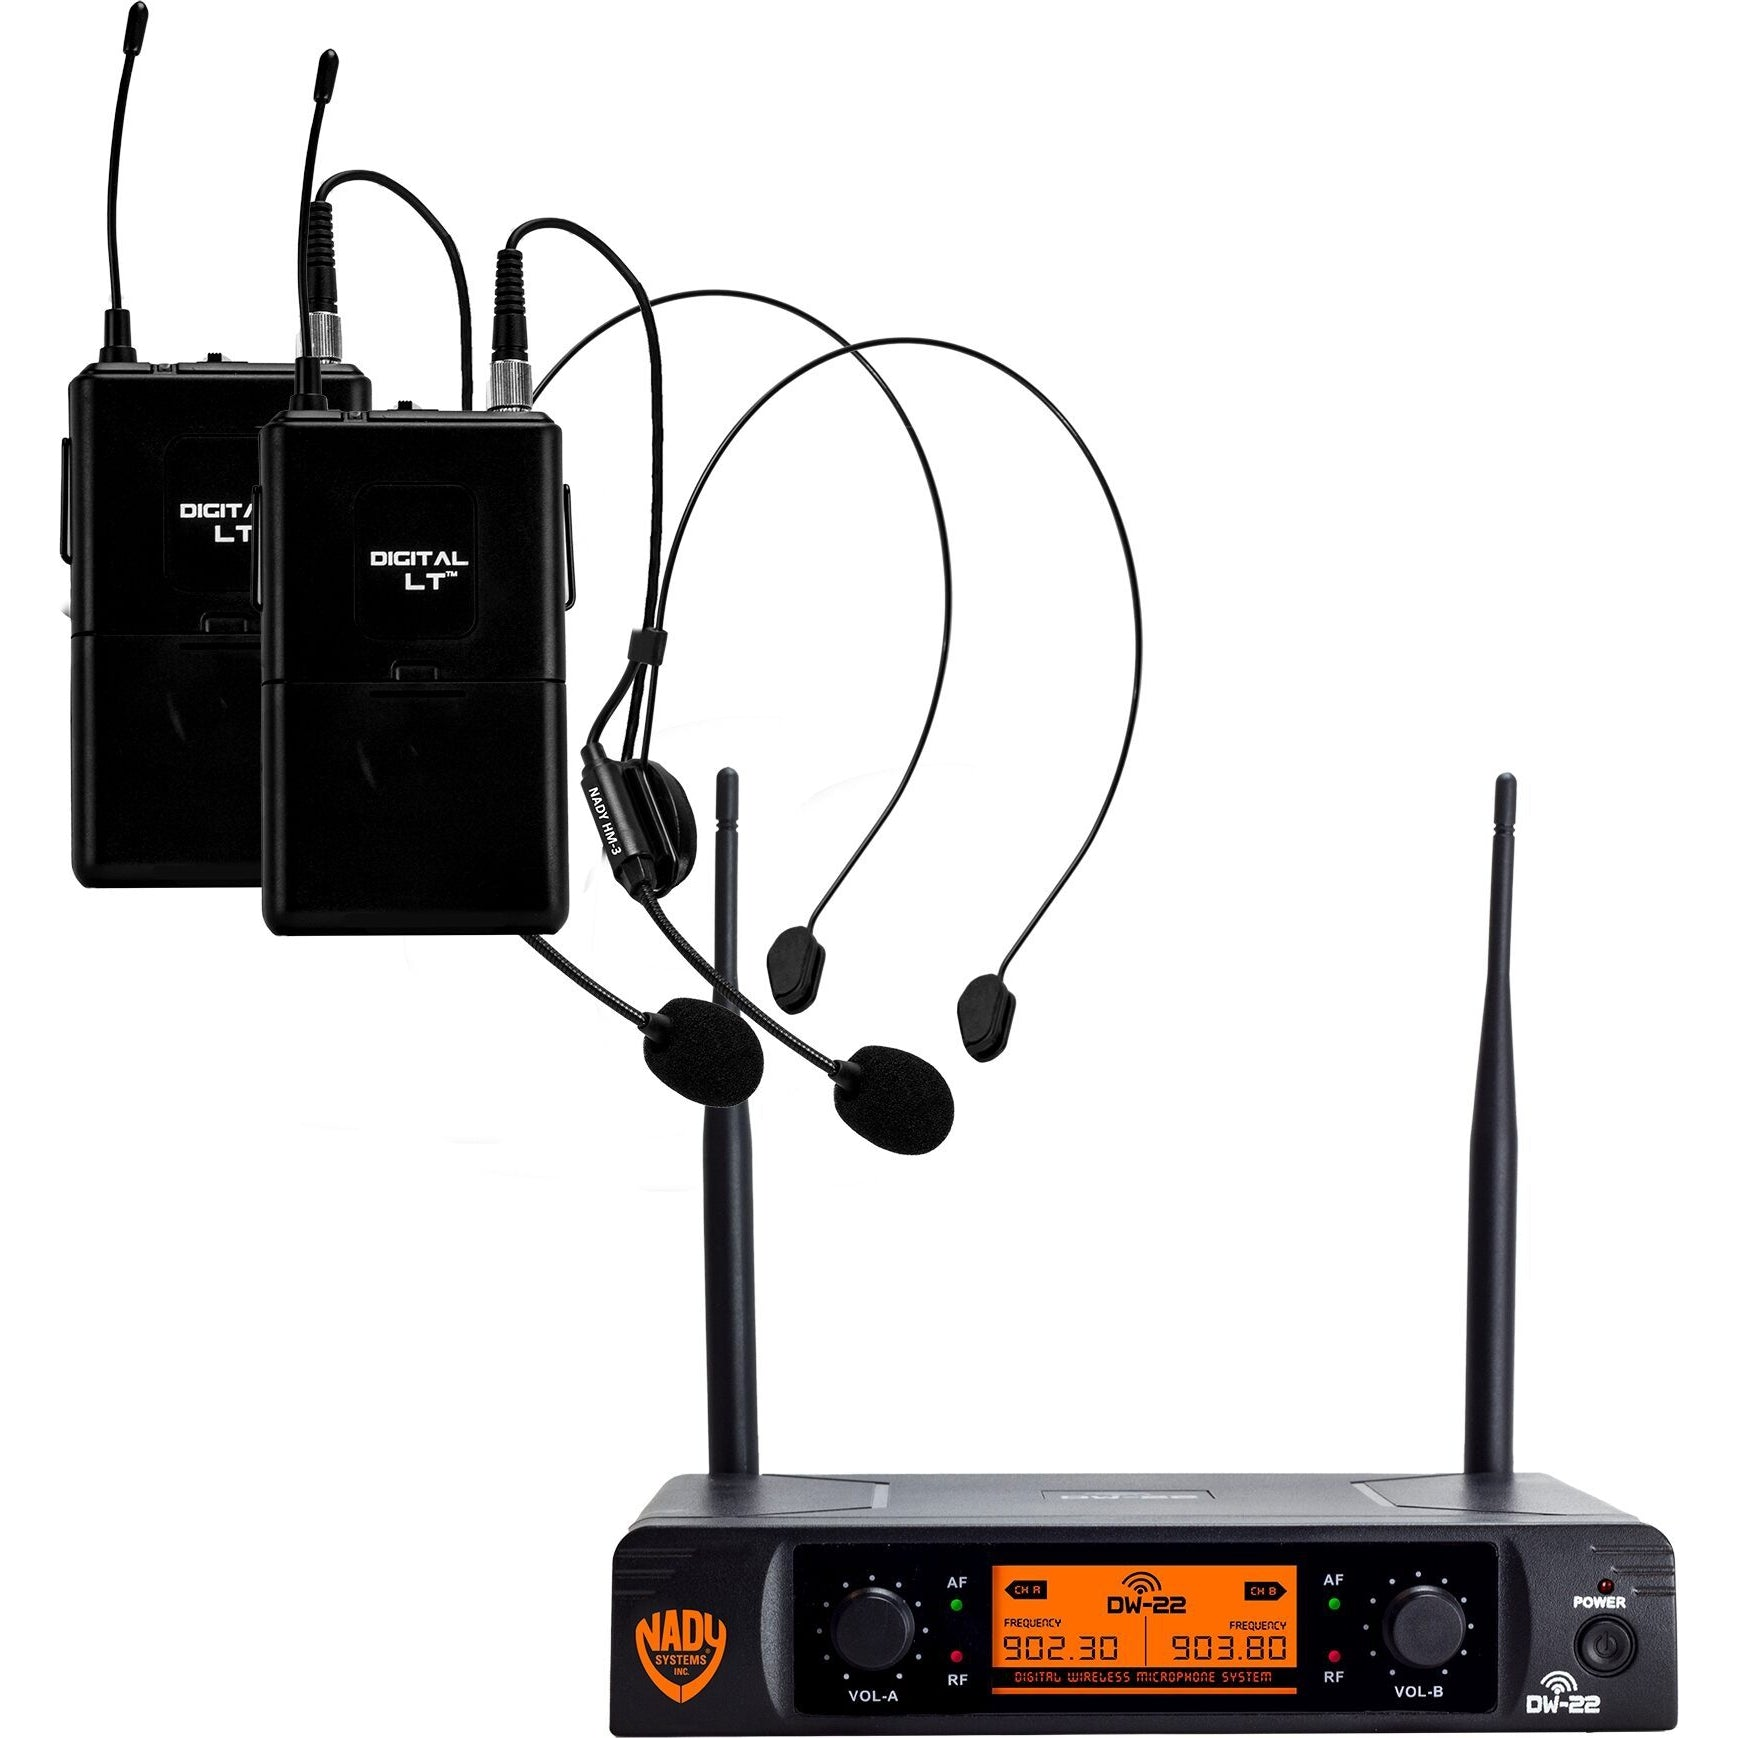 Nady DW-22 Dual Transmitter Digital Wireless Headset Microphone System, Channel D13/D14